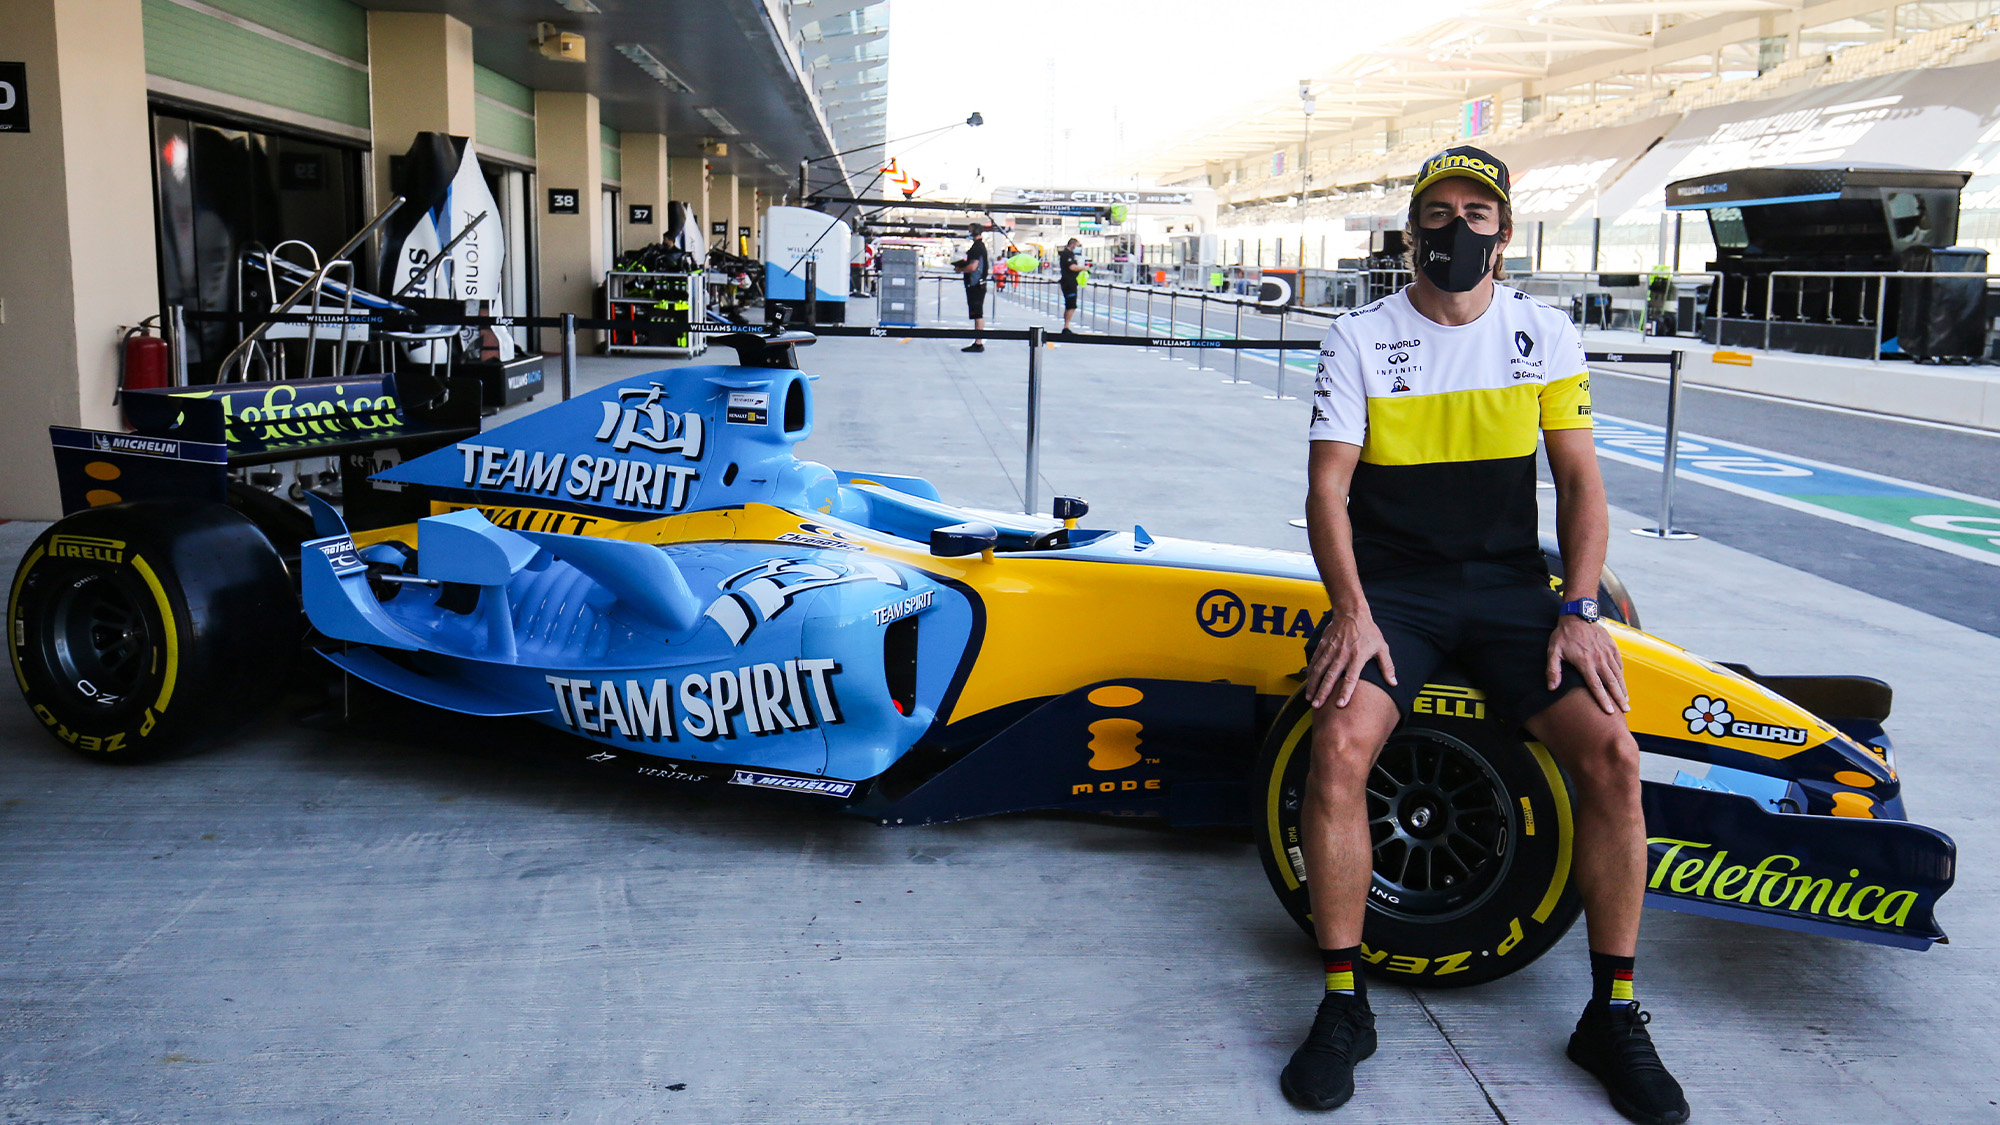 Fernando Alonso with the Renault R25 in 2020